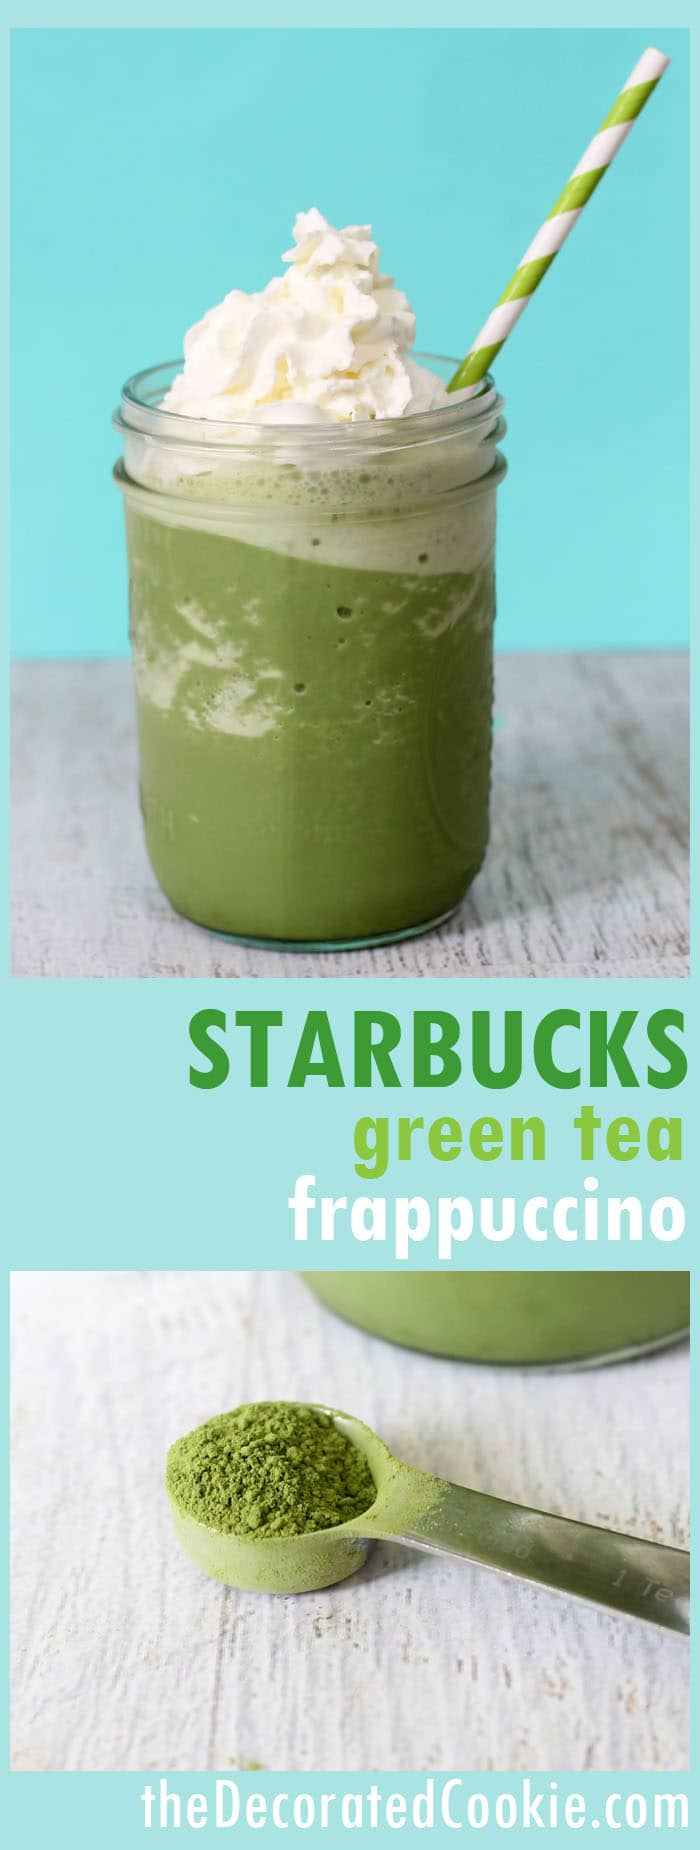 copycat Starbucks green tea frappuccino -- a healthier, less expensive, delicious homemade version of the smoothie